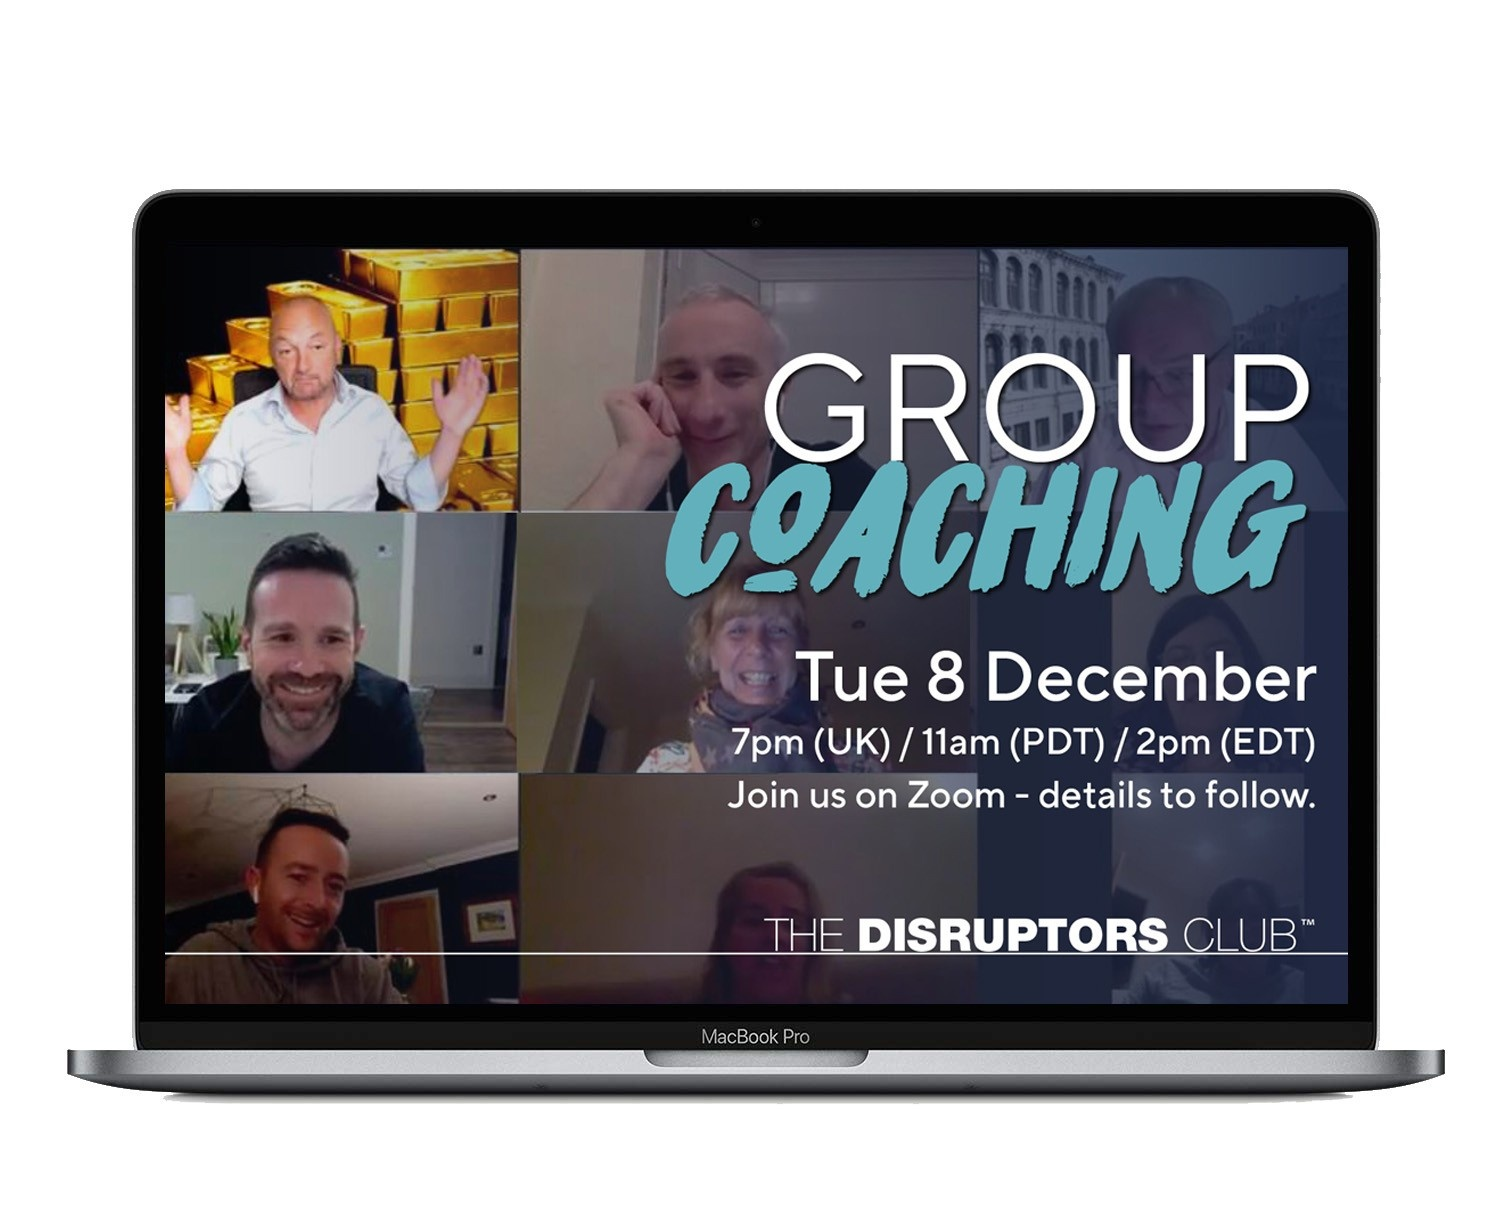 The Disruptors Club Online Business Group Coaching